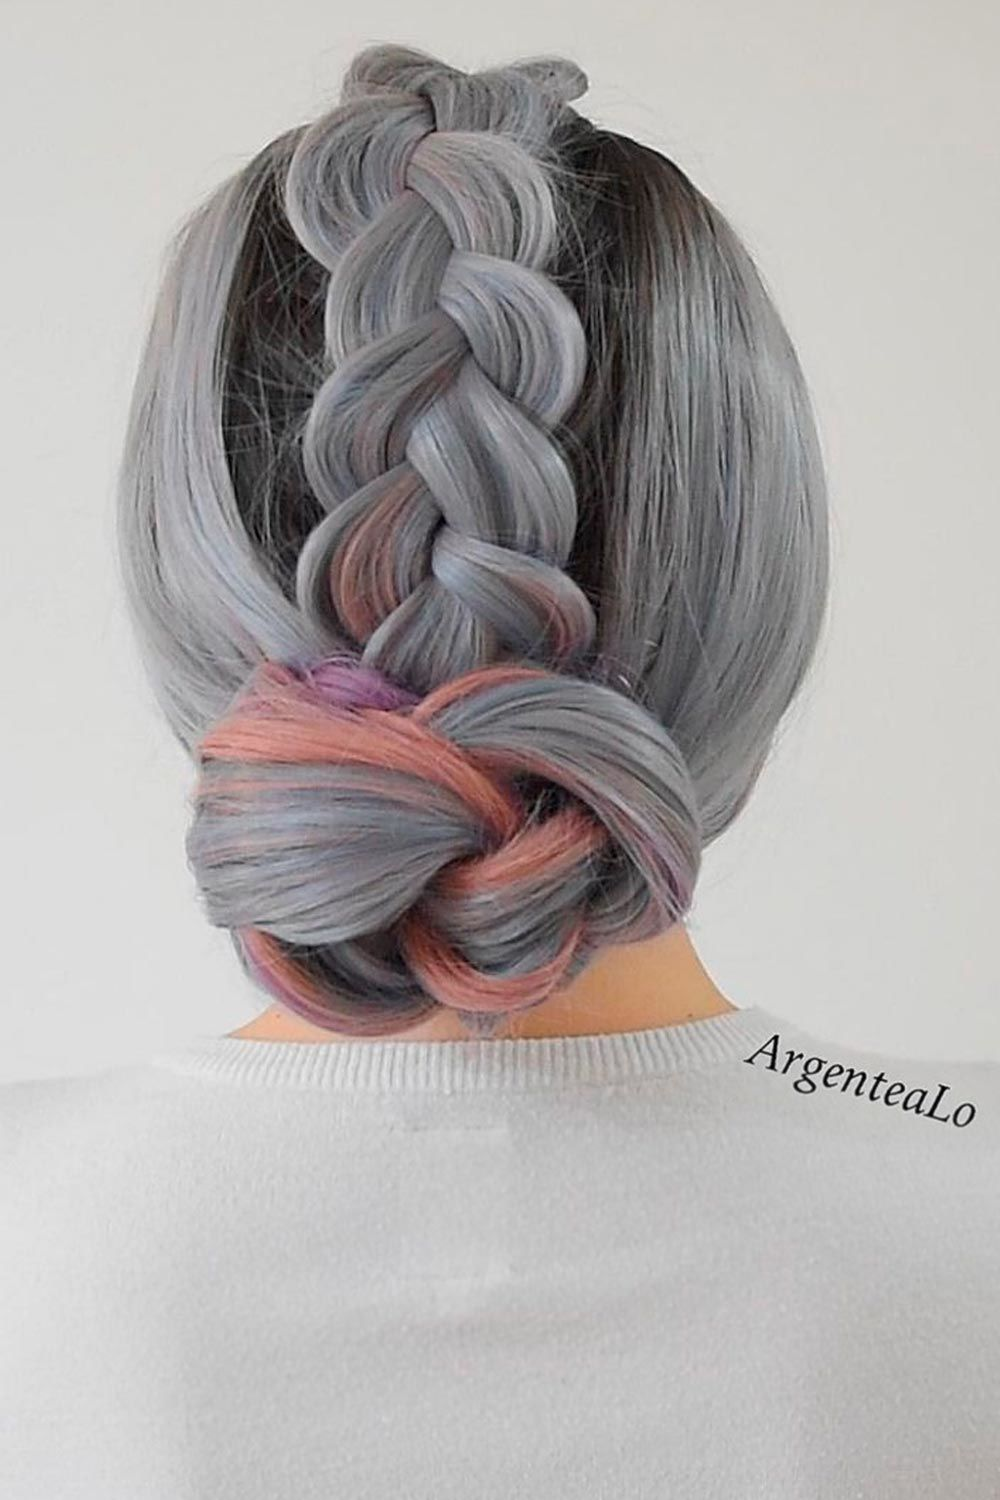 Knotted Updo Style, salt and peper hair, salt and pepper gray hair